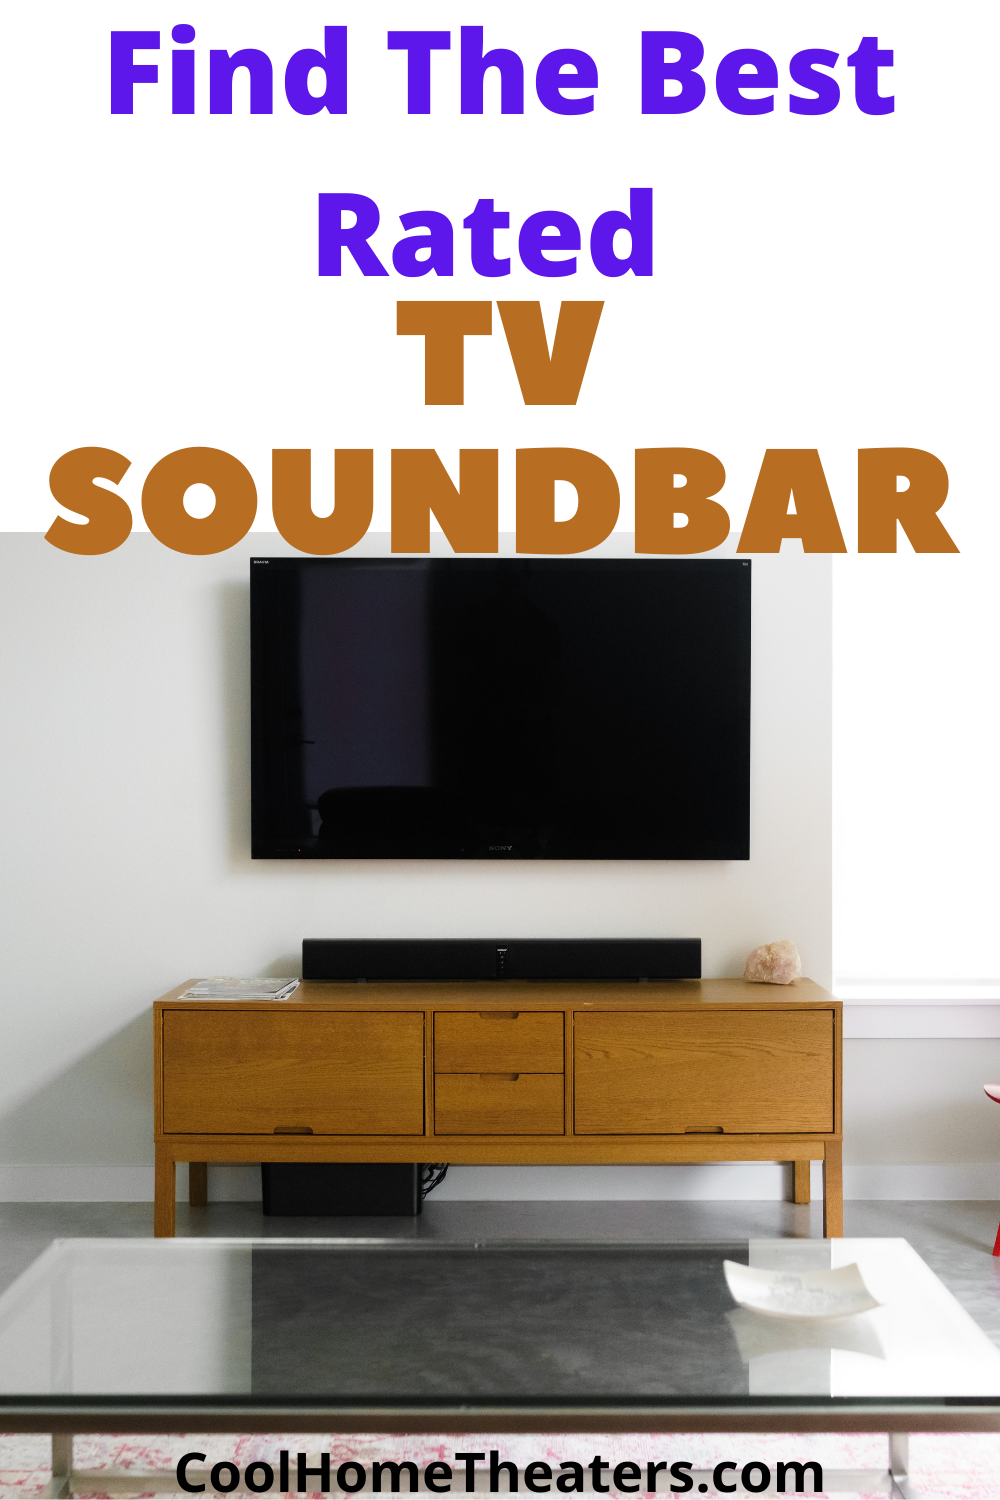 What Is The Best Rated TV Sound Bar With a Subwoofer?